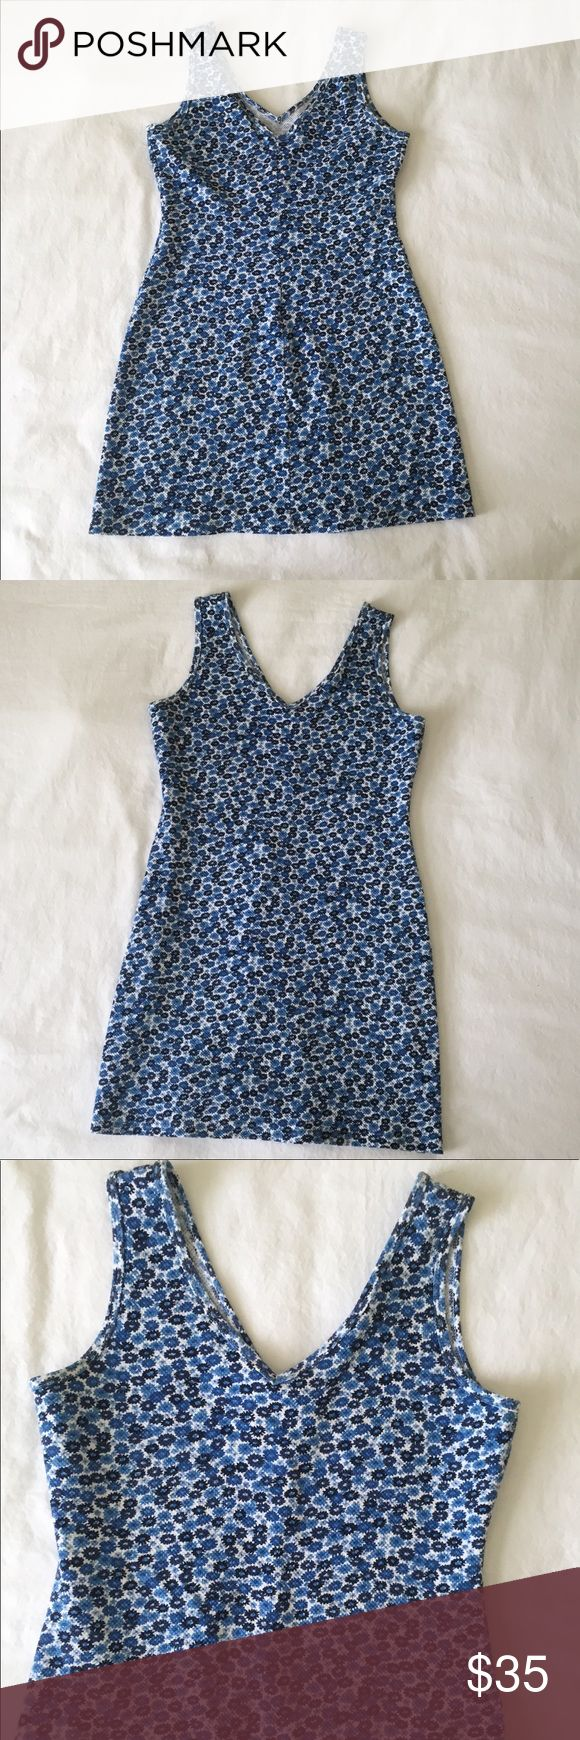 """90s Floral Mini Dress, Blue and White Vintage 90s Floral Mini Dress, Blue and White Small Floral Print, Waffle Material, Brand: M Basics, 56% Cotton, 42% Polyester, 2% Spandex, Material has Stretch, Tag Says Size Large, See Measurements for Sizing, Fits more like Medium or Small, Listing this as Size Medium, Great Condition, V-Neck in Front and Back, Length 31"""" Underarm to Underarm 34"""" Waist 33"""" Hips 40"""" Vintage Dresses Mini"""